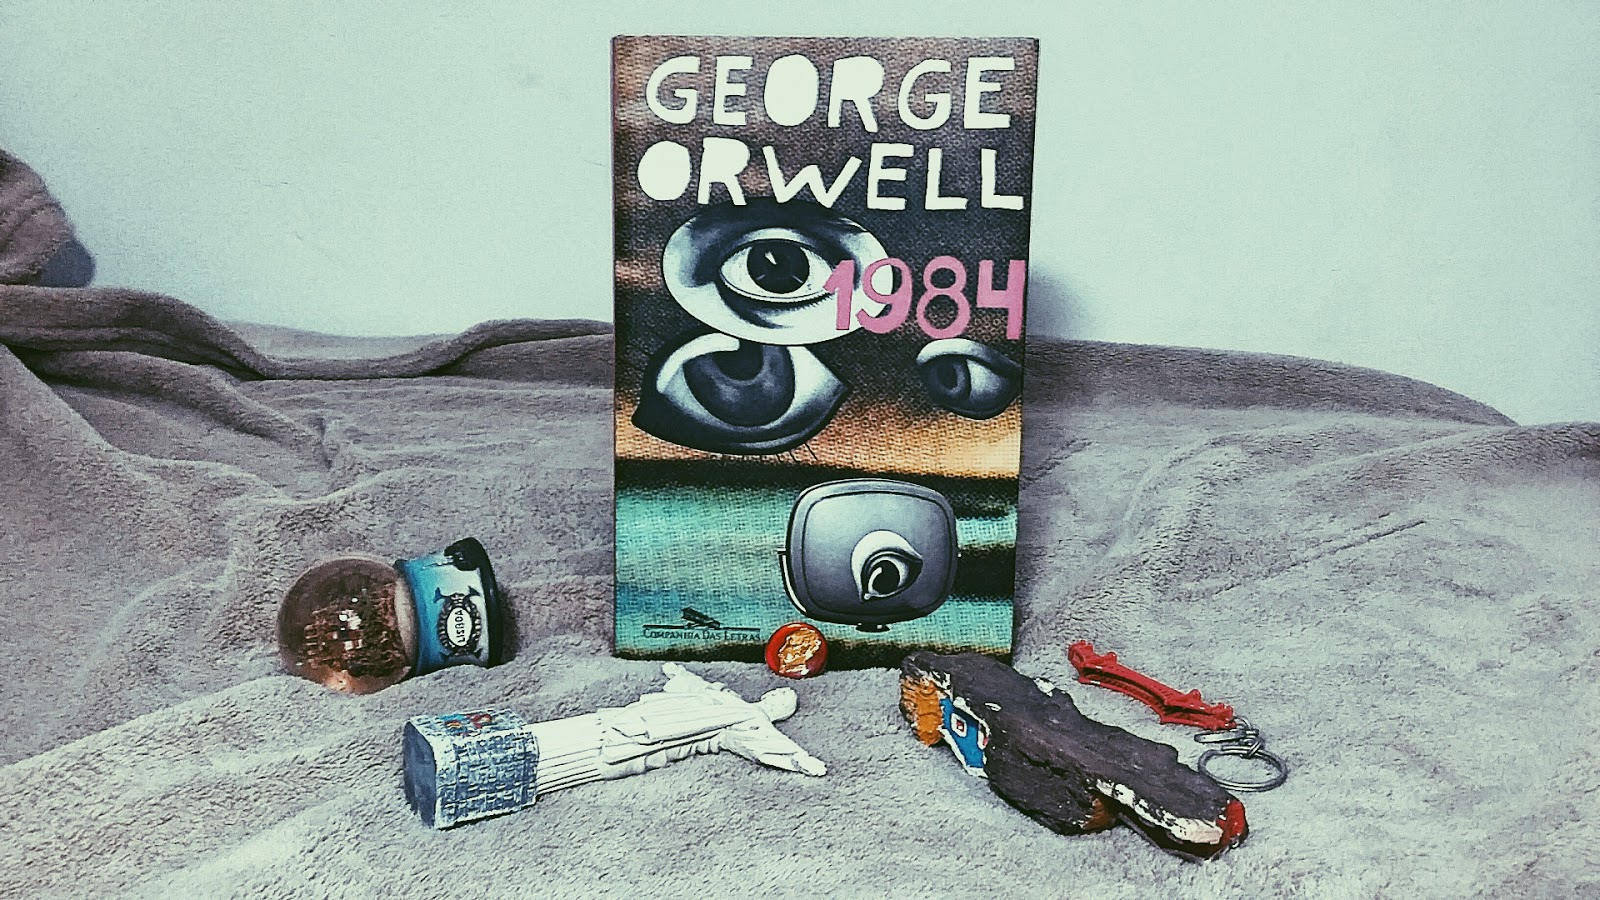 historical context of 1984 george orwell essay The film gattaca and george orwell's novel 1984 book share dystopian aspects historical context of 1984 – george orwell haven't found the essay you want.